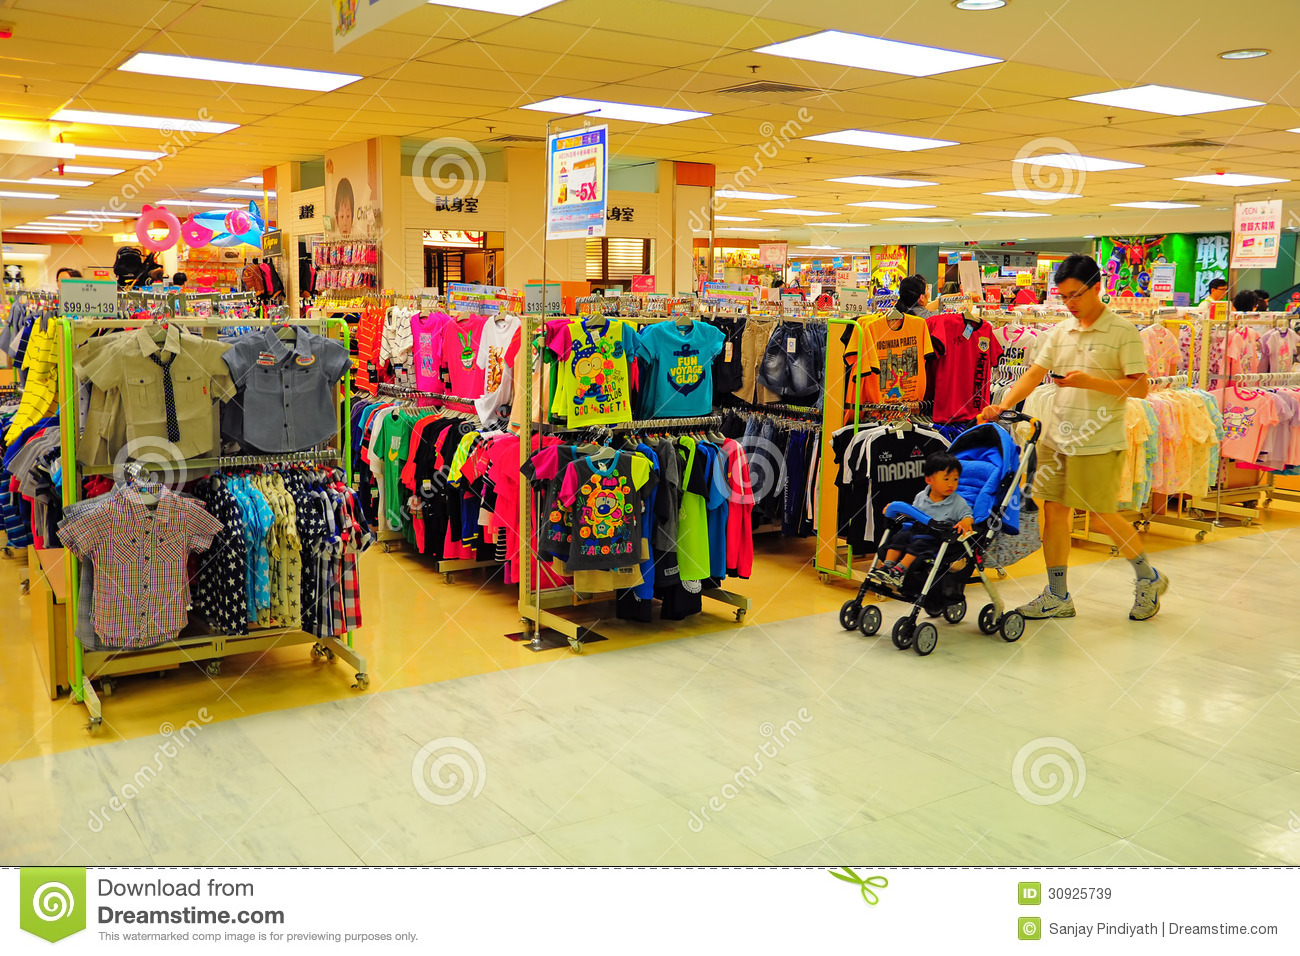 Strand offers its customers the latest designer clothing from high quality, renowned popular fashion brands such as French Connection, Mexx, Oasis and